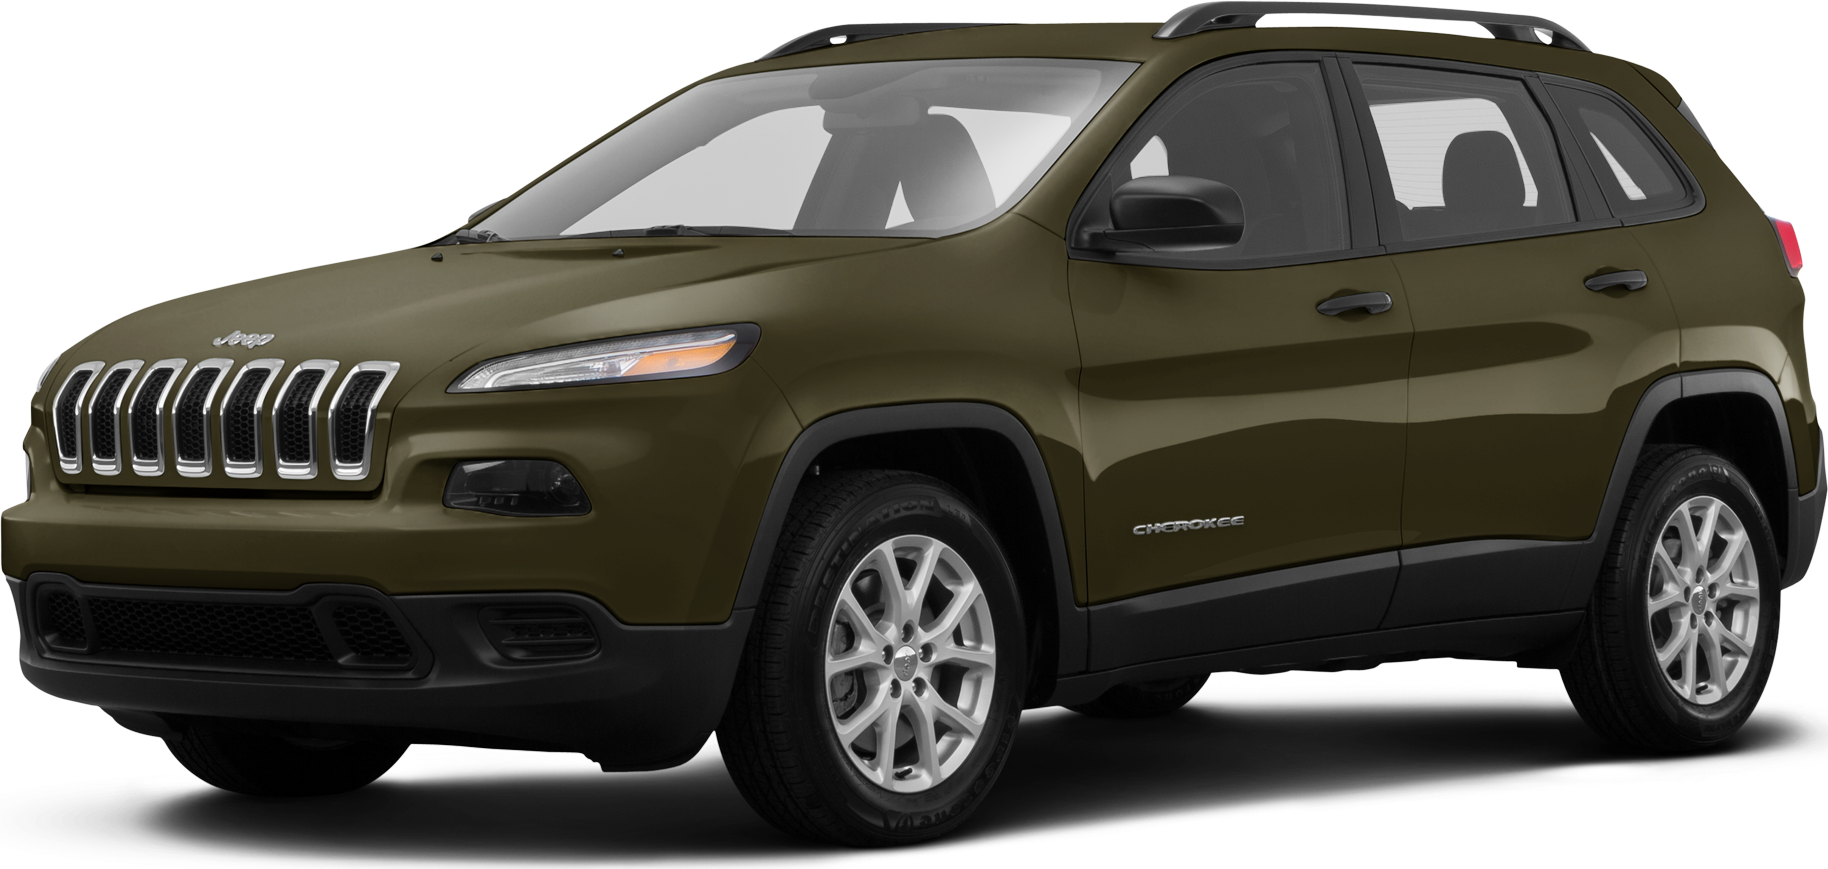 2016 Jeep Cherokee Values Cars For Sale Kelley Blue Book